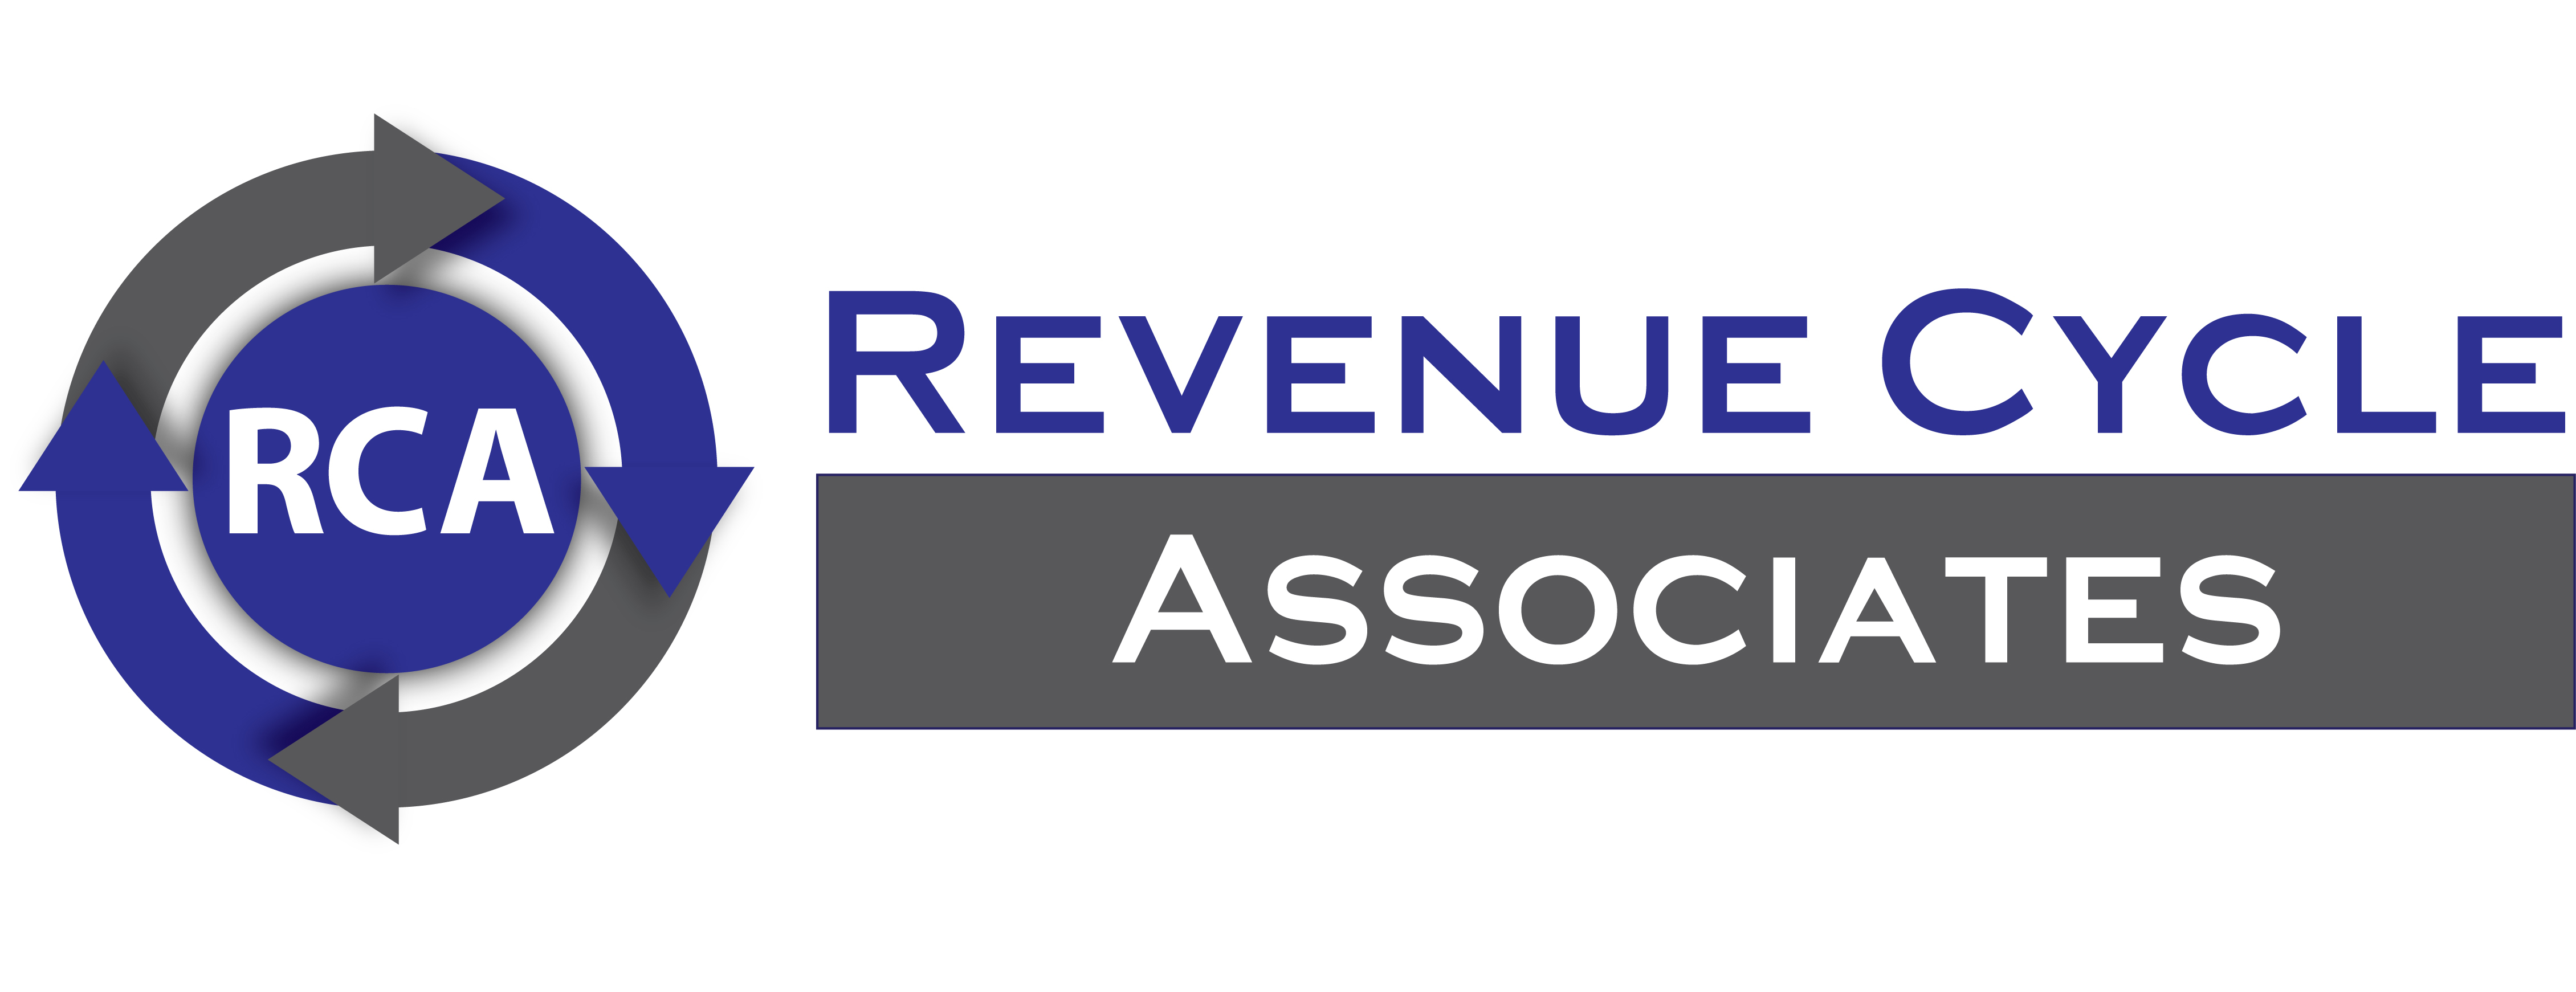 Revenue Cycle Associates